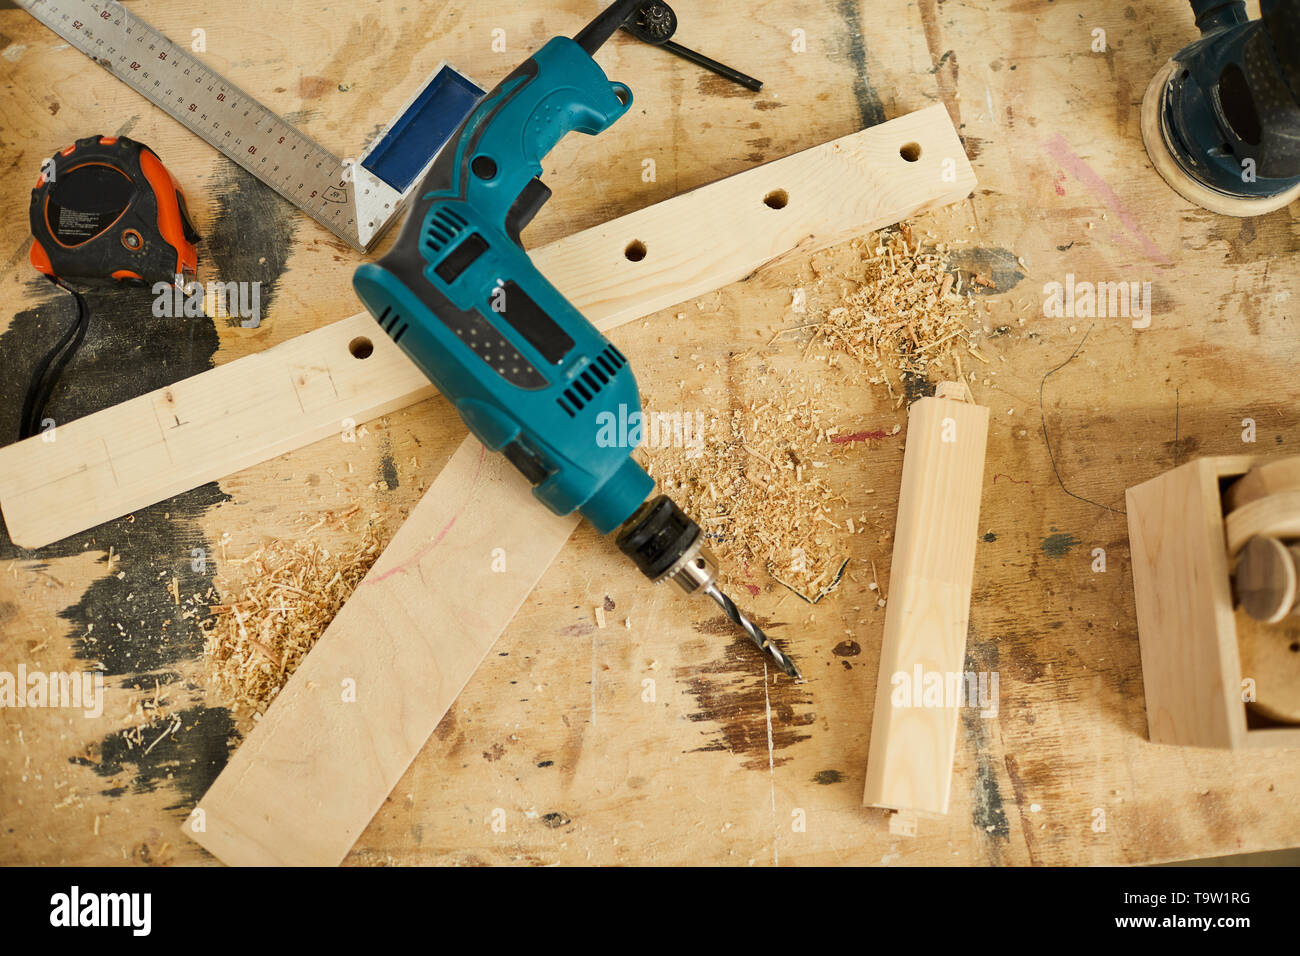 Above view background of tools and wood lying on table in carpenters workshop, copy space - Stock Image